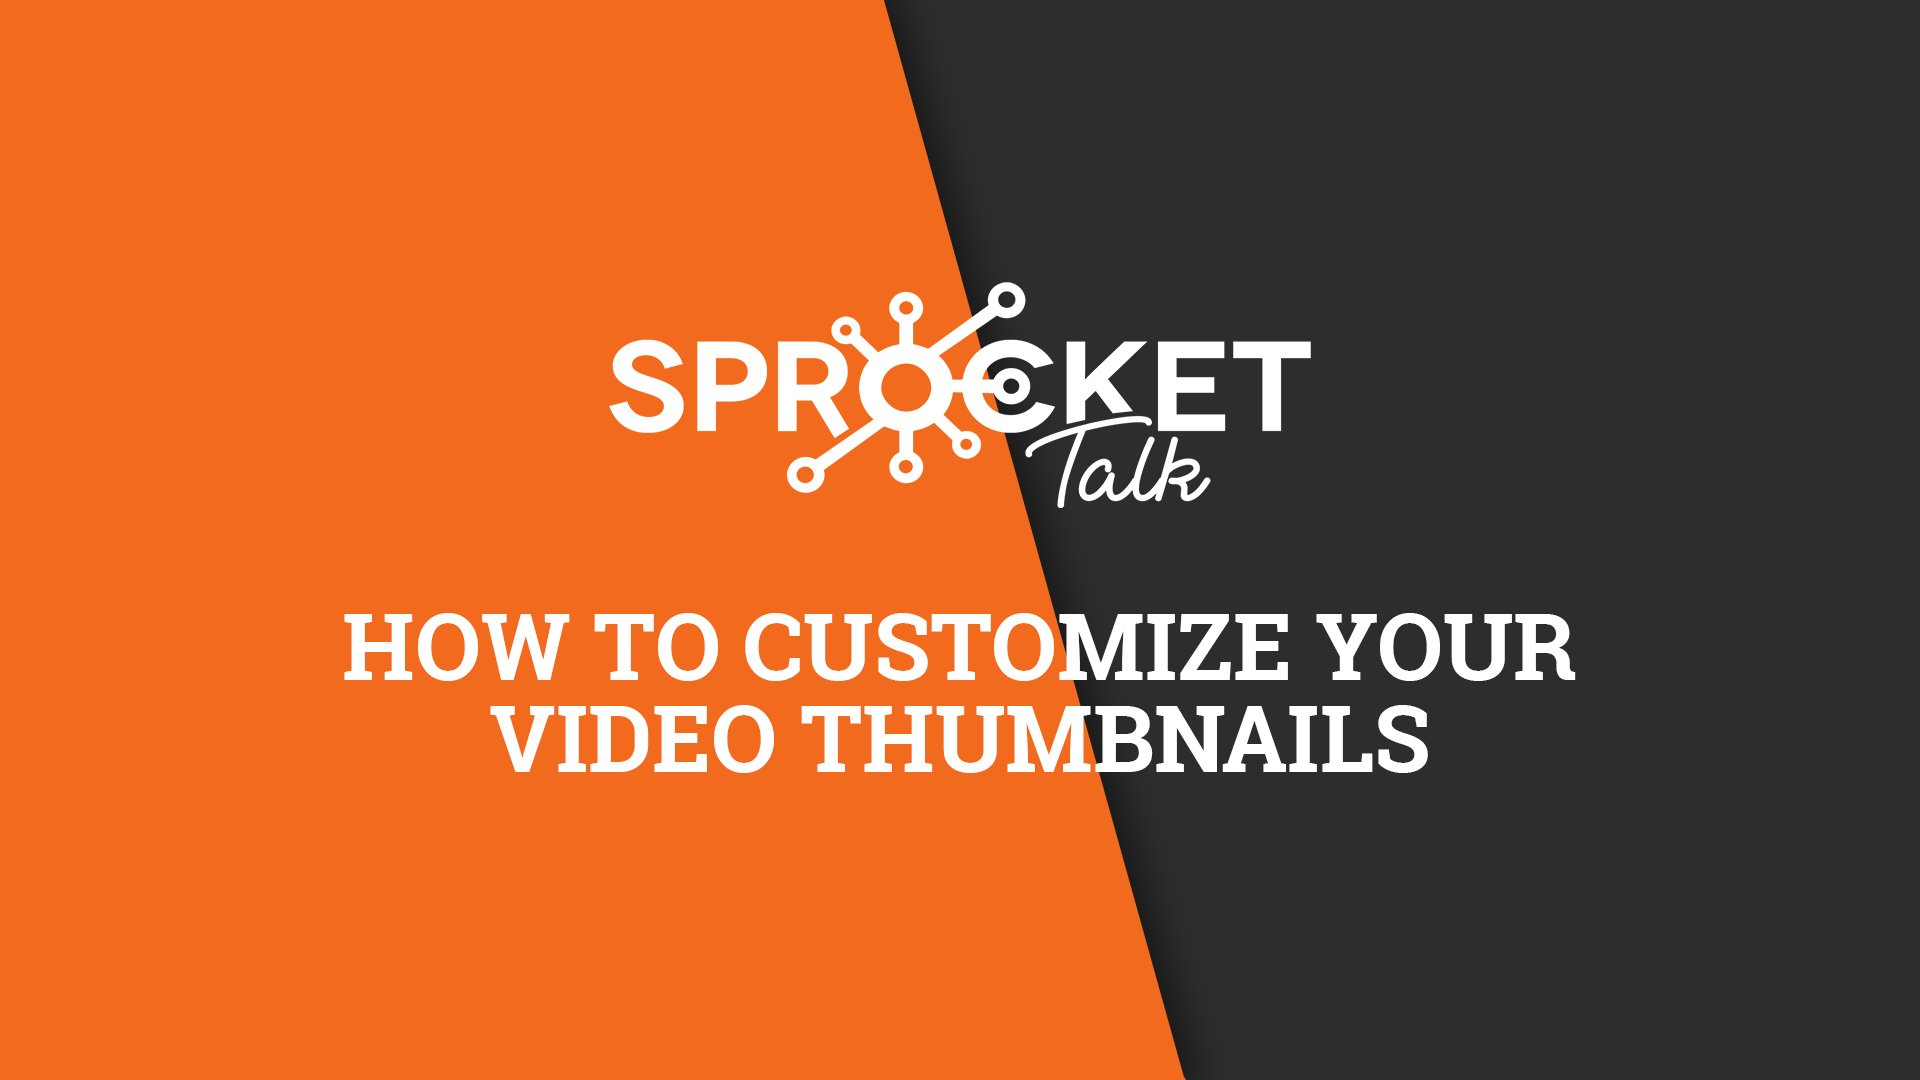 How To Customize Your Video Thumbnails